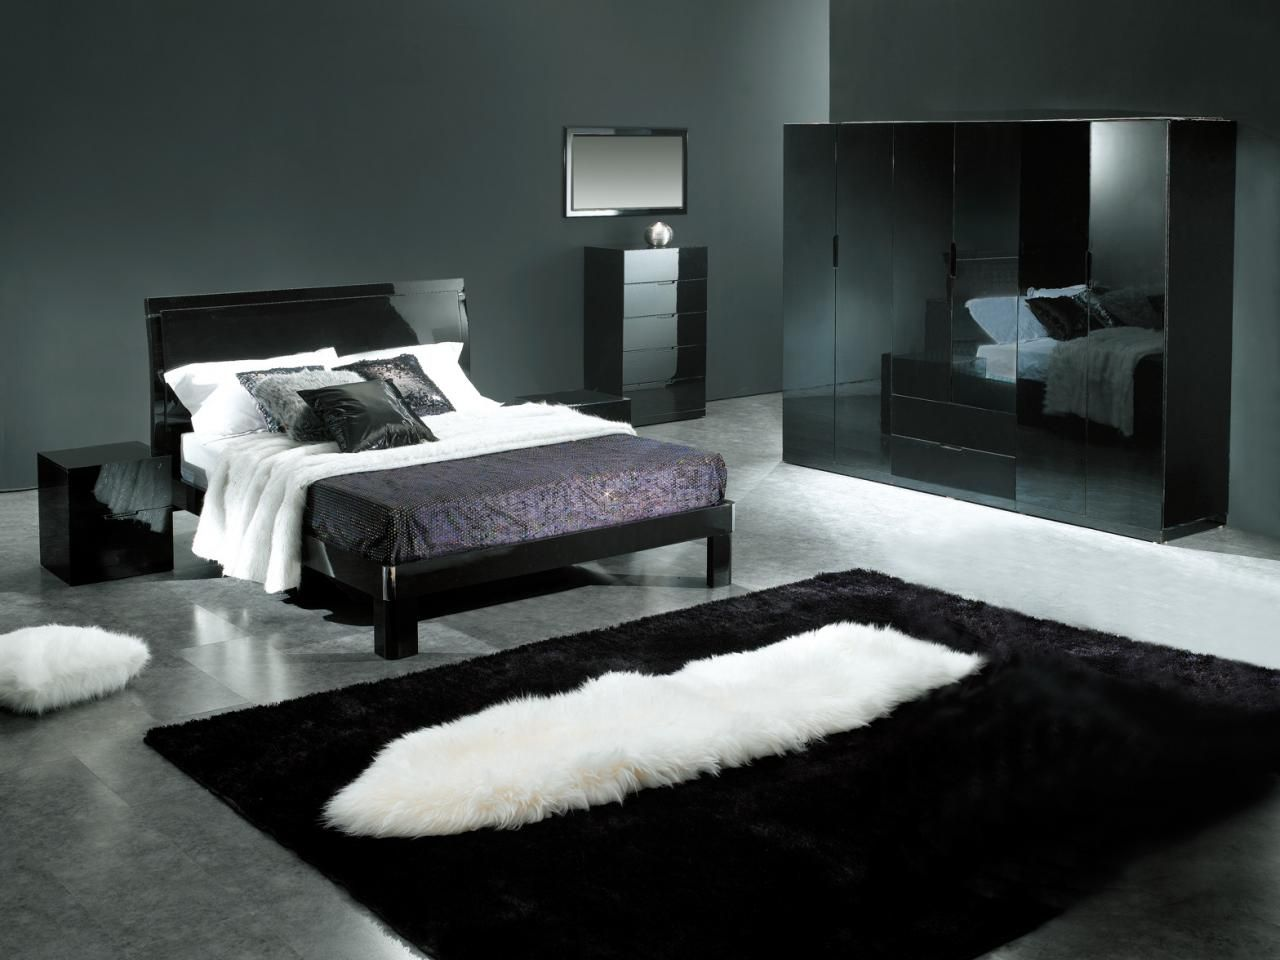 Black Room Design nice looking bedroom in black and white gorgeous design looking